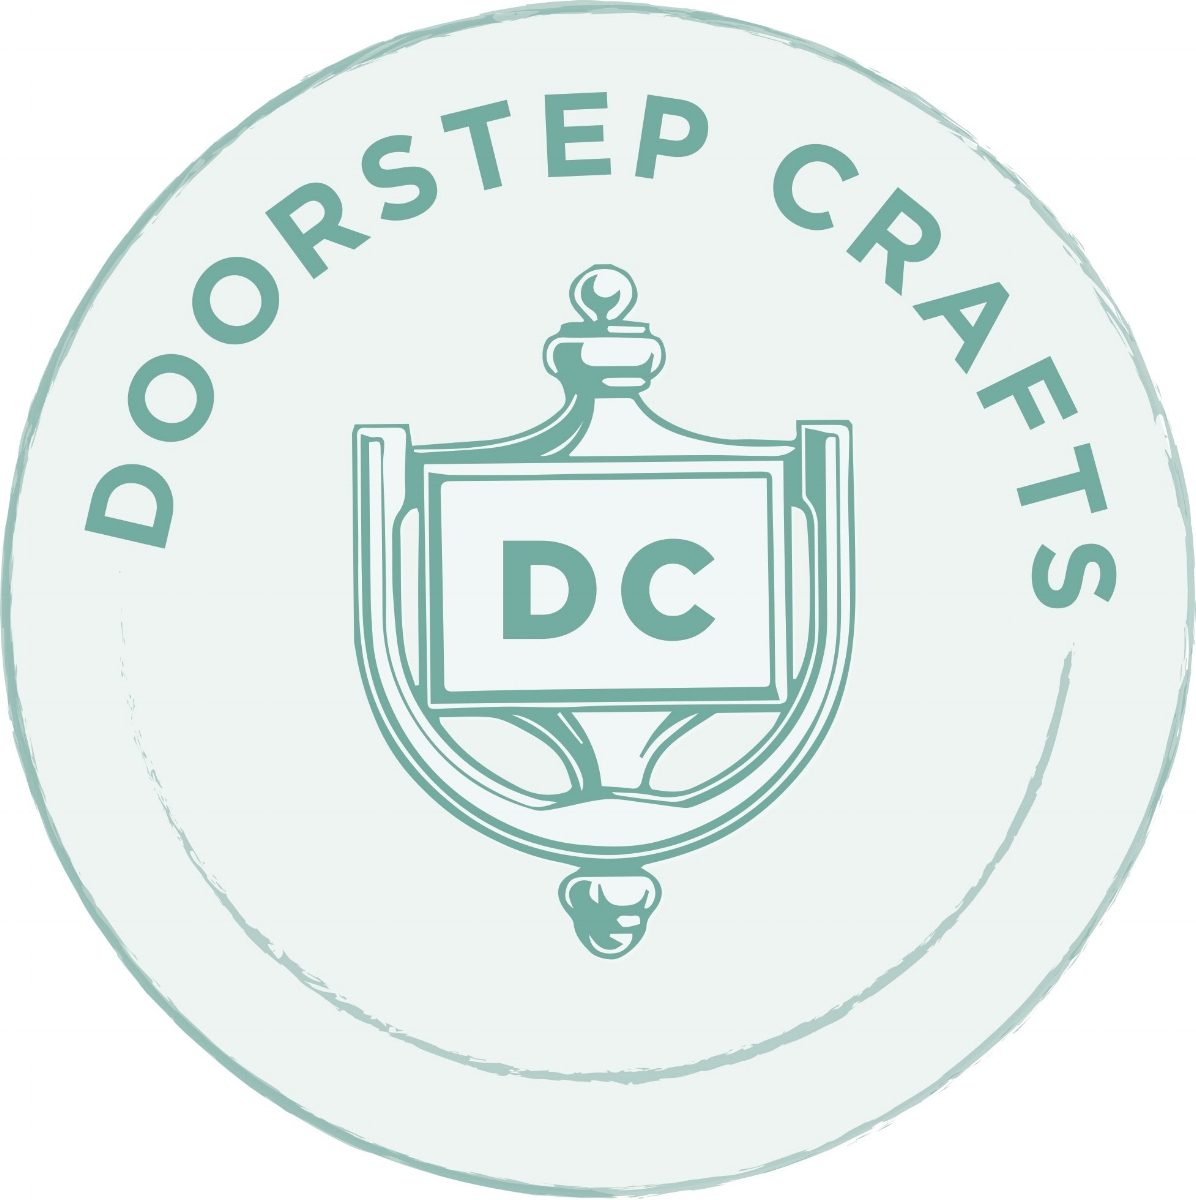 Doorstep Crafts